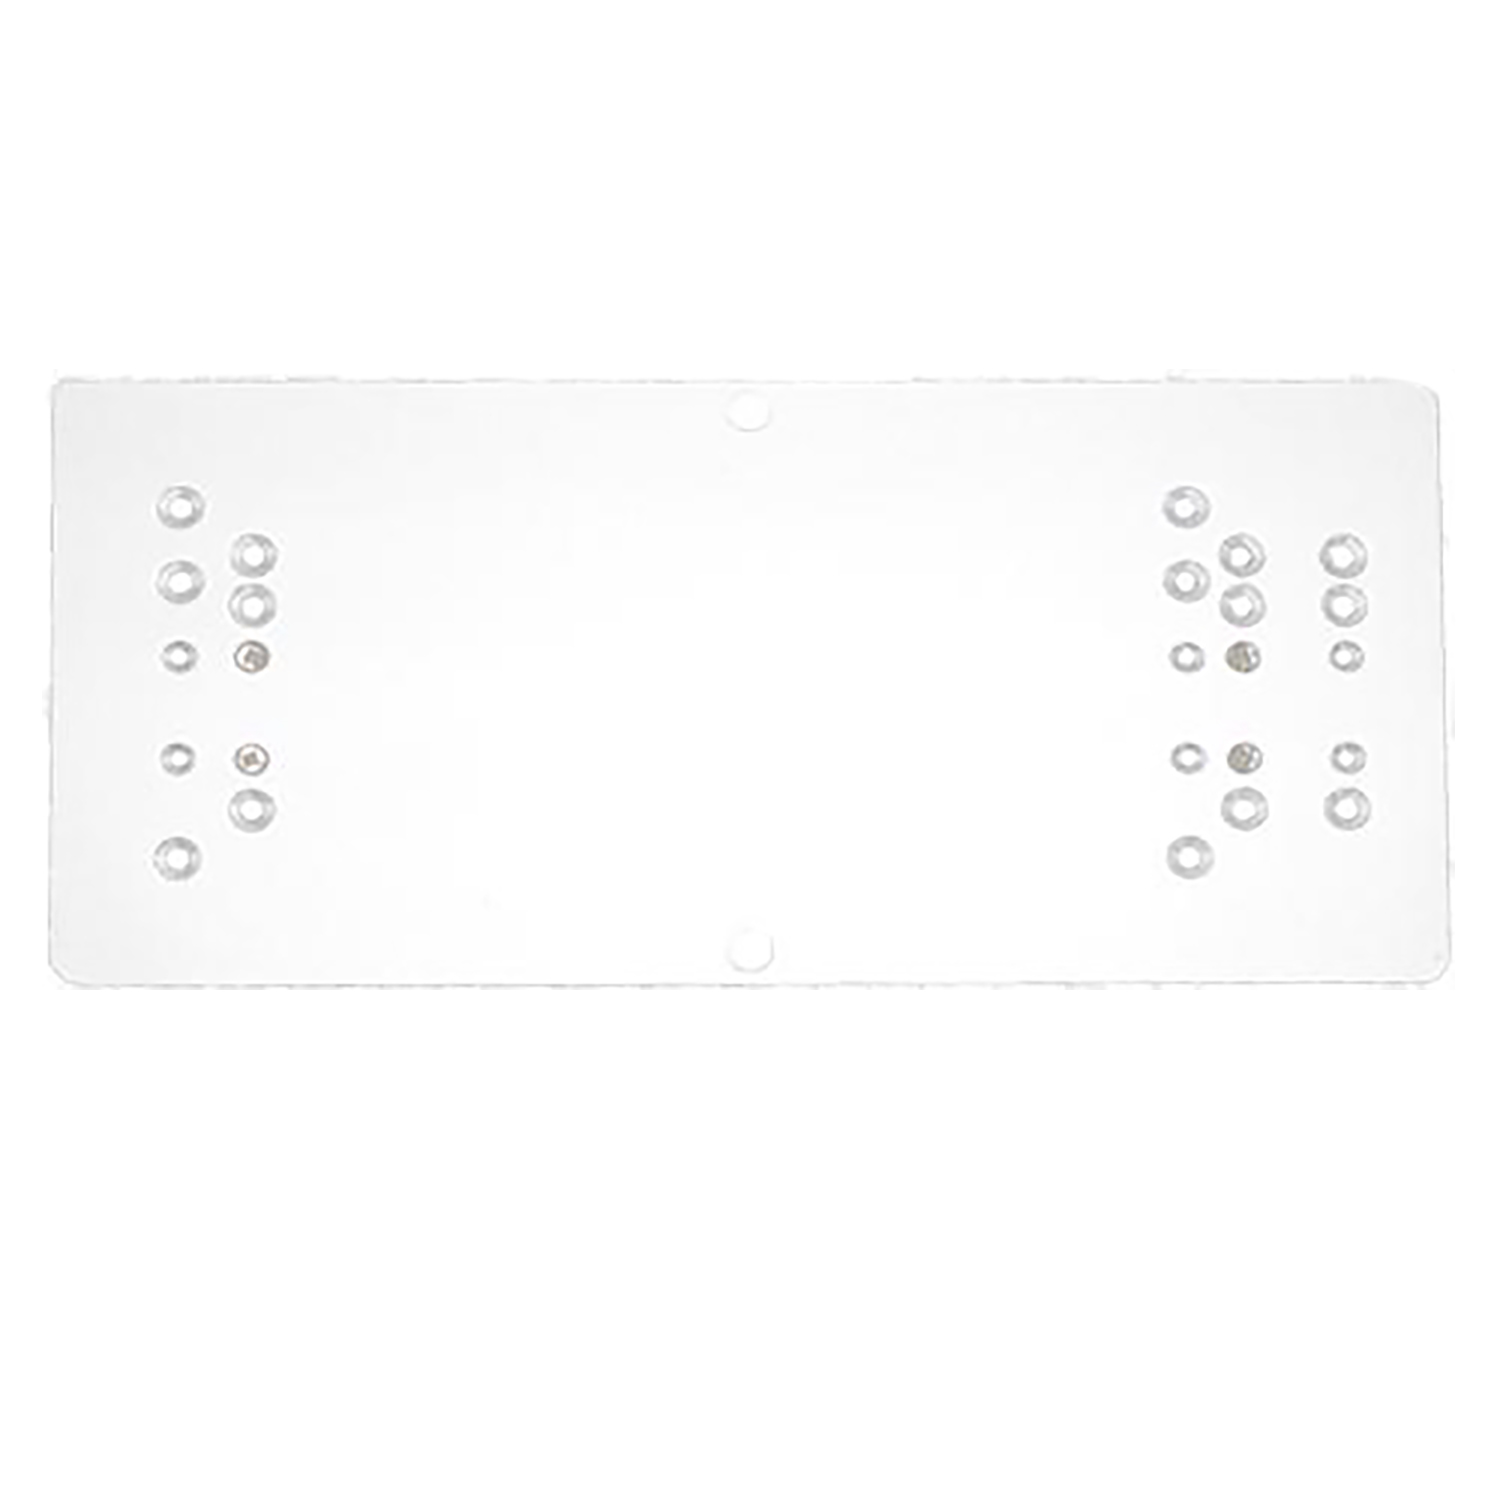 Mounting Plate for Waveline Series